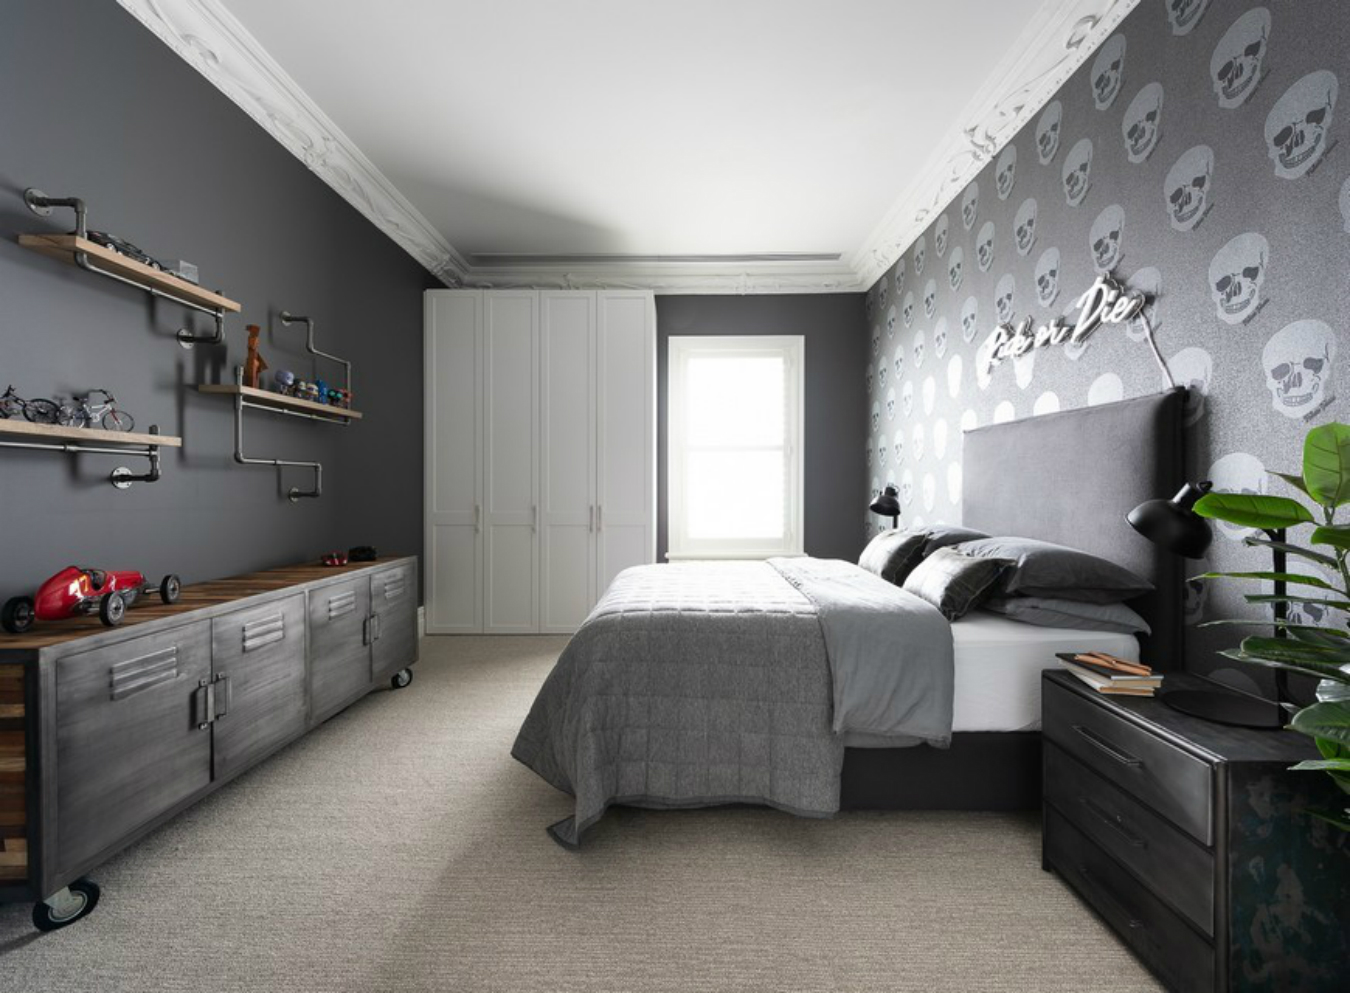 Liberty Interiors One Of The World S Best Kids Design Firms Inspirations